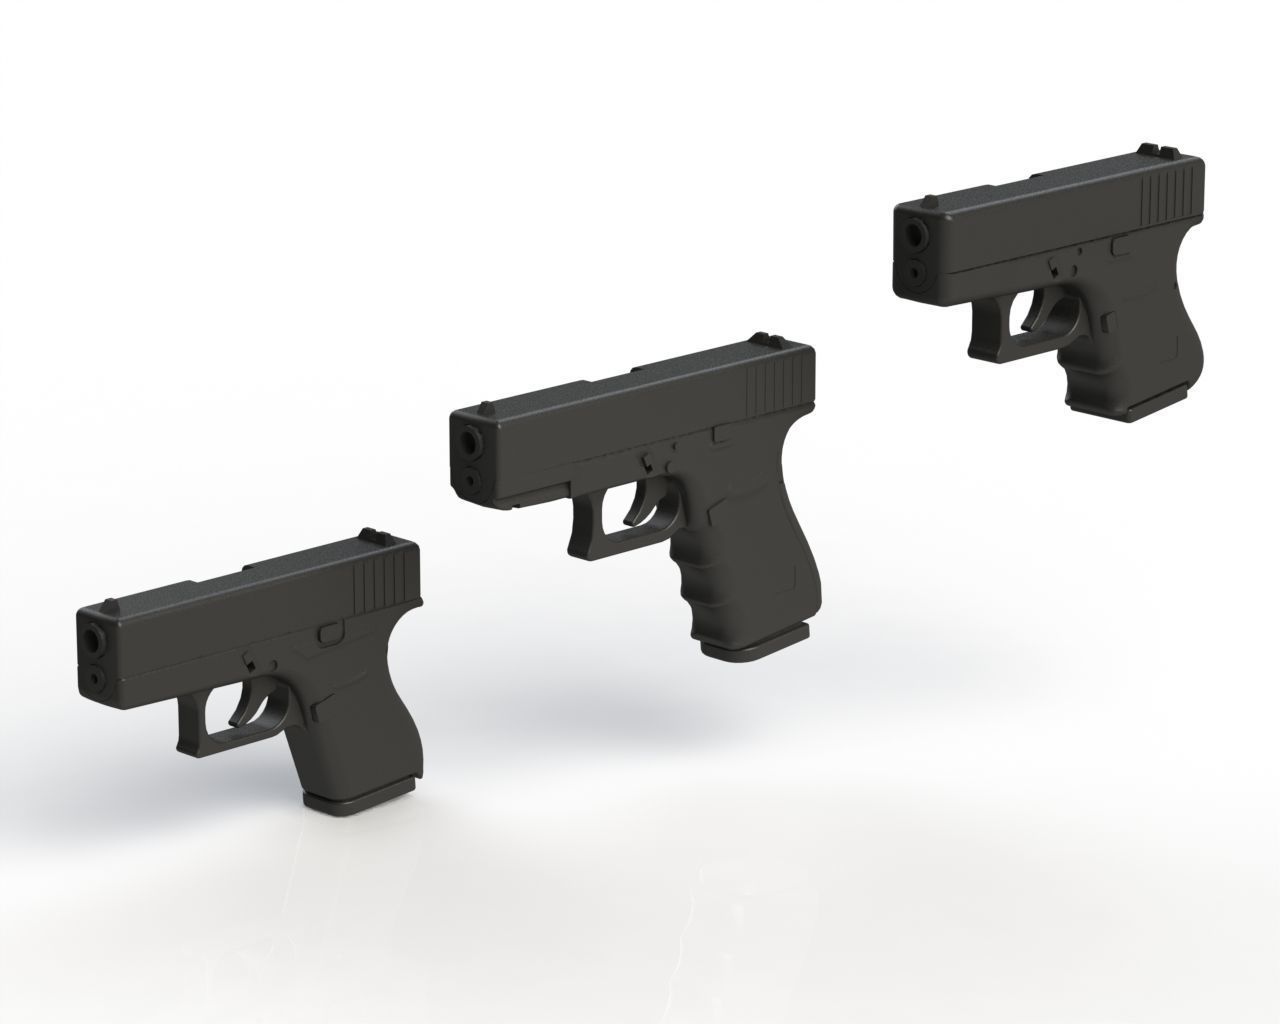 Glock Pack 1-1 Scale | 3D Print Model